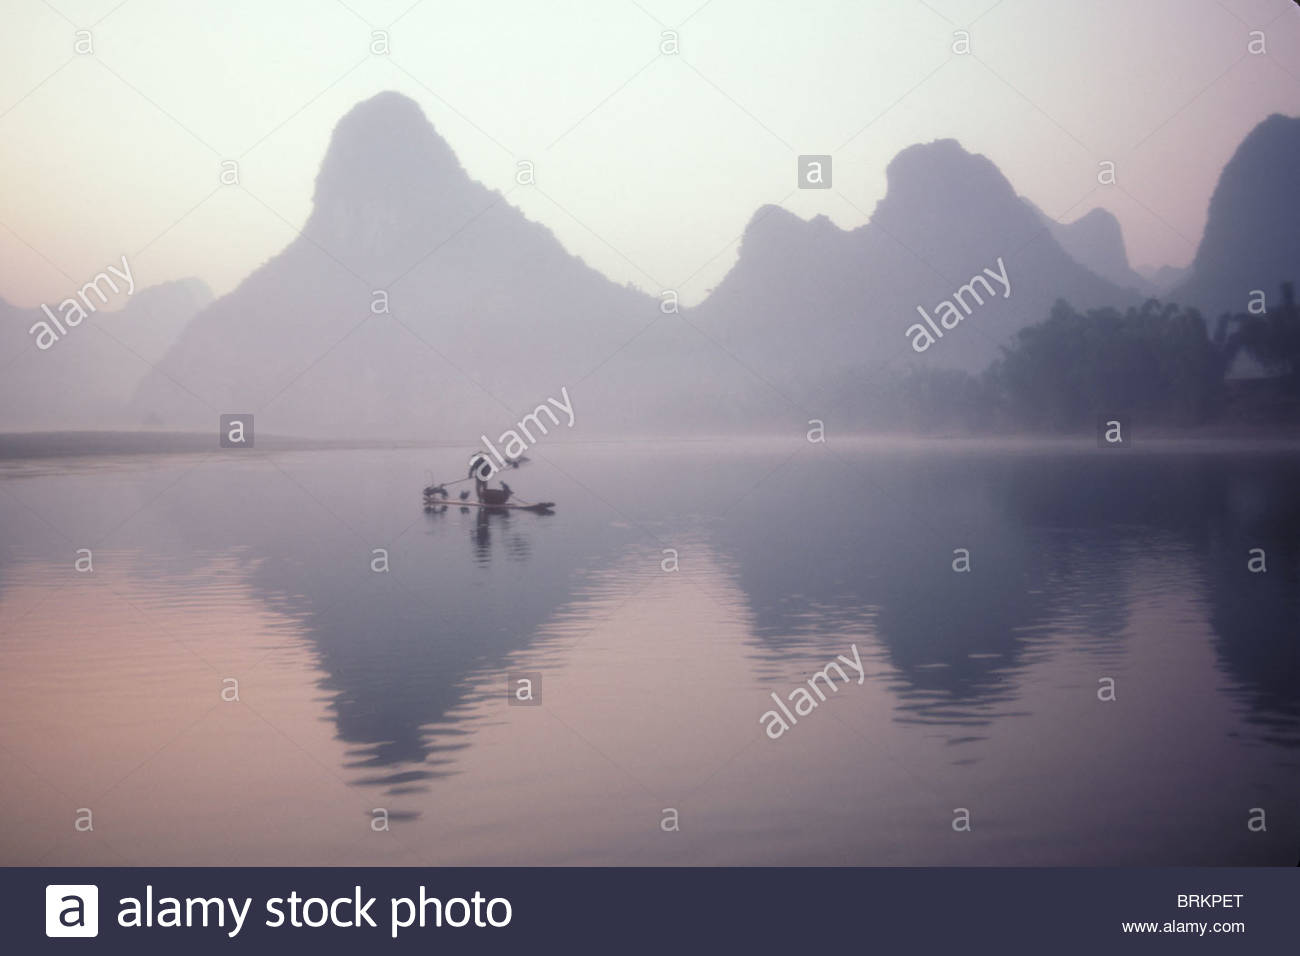 A cormorant Fisher, works the Li River at dawn. - Stock Image